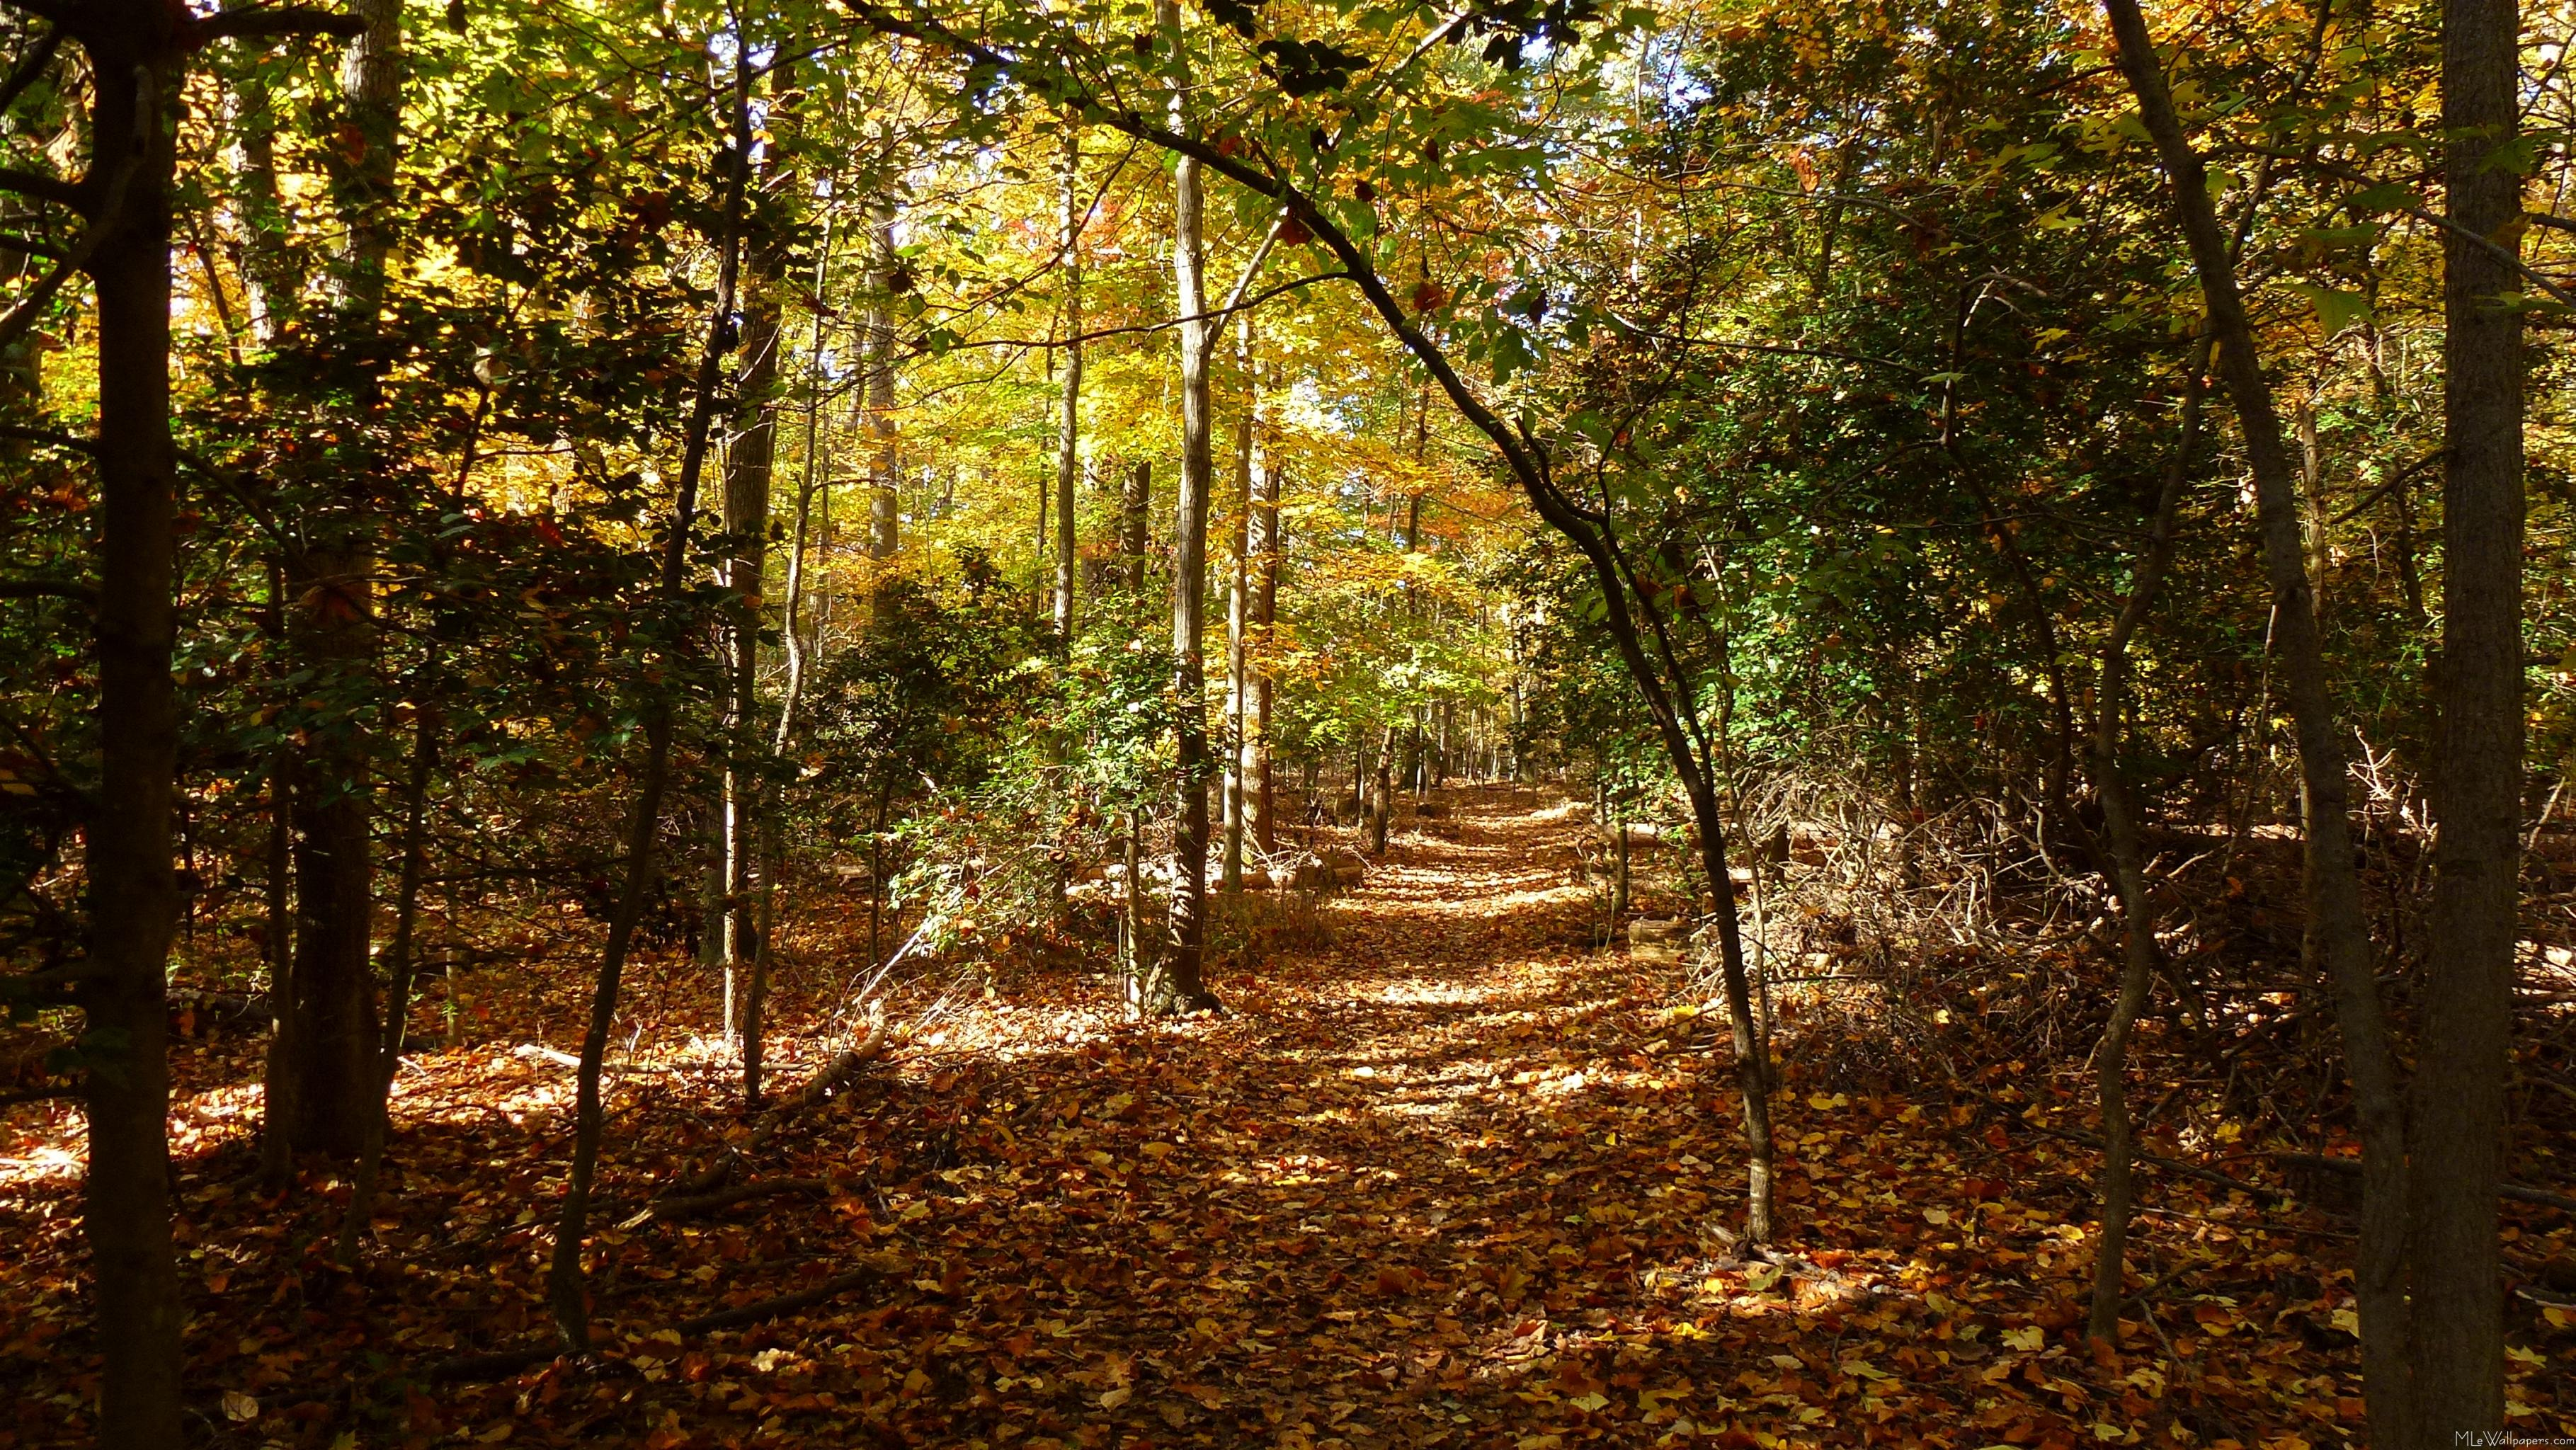 Fall Wooded Wallpaper Mlewallpapers Com Greenbelt Park In Fall I